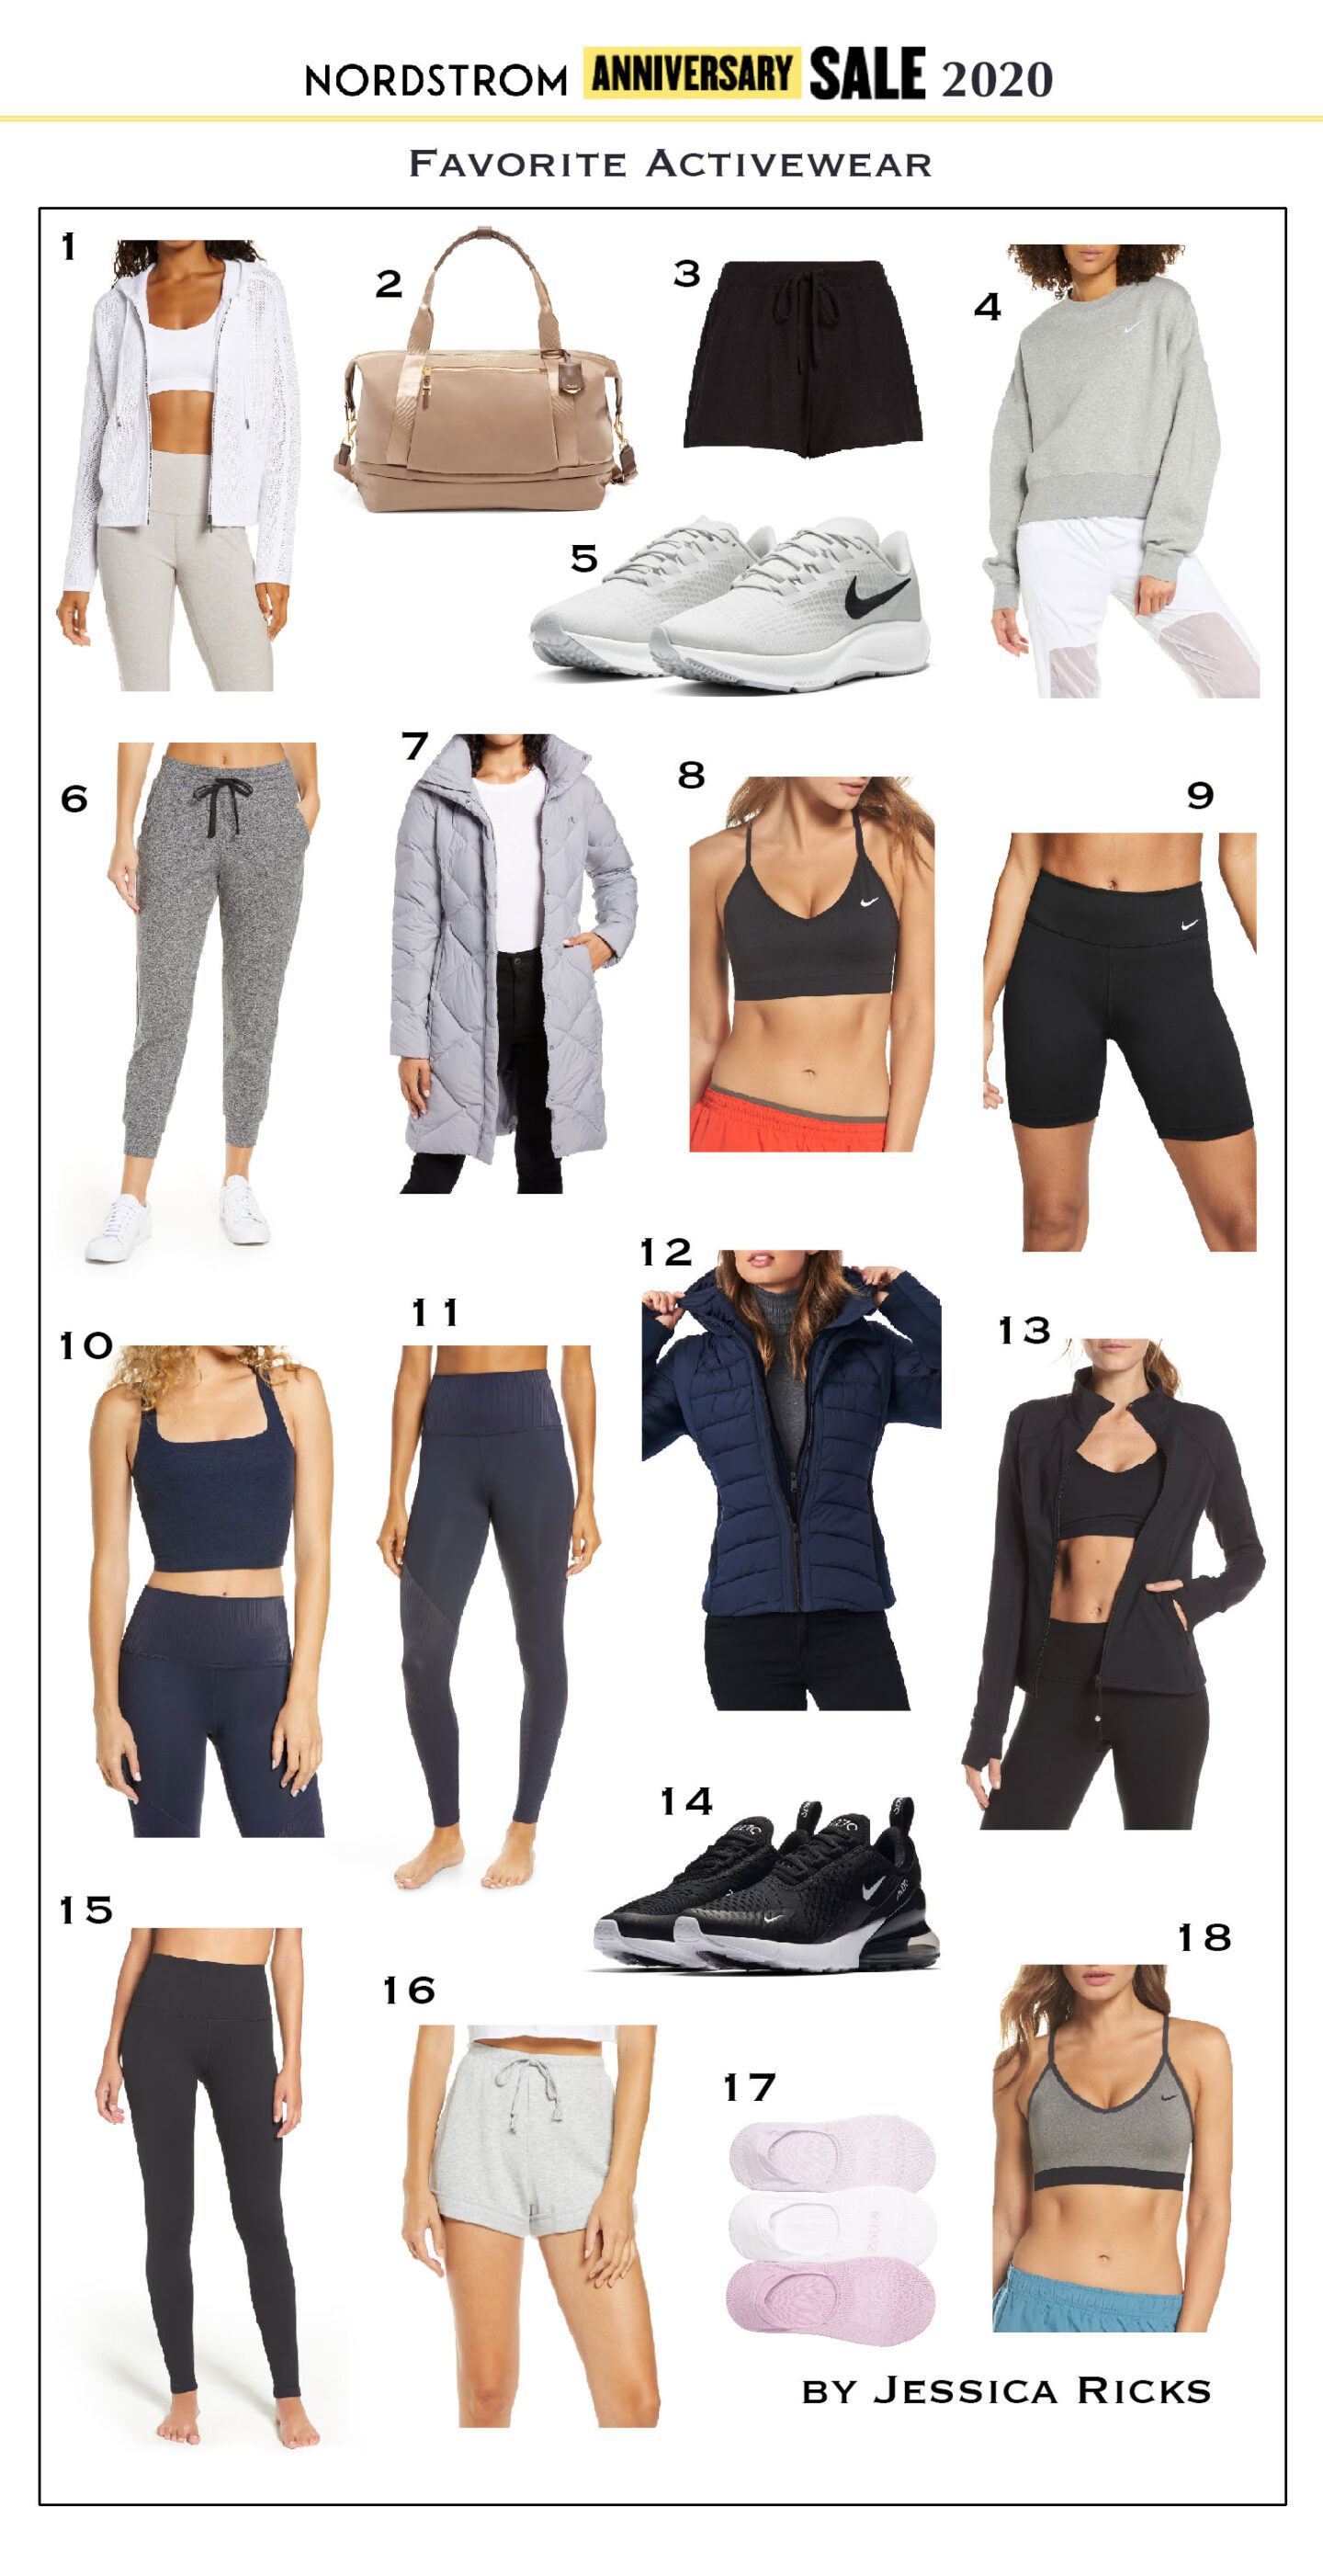 nordstrom anniversary, sale, shopping guide, activewear